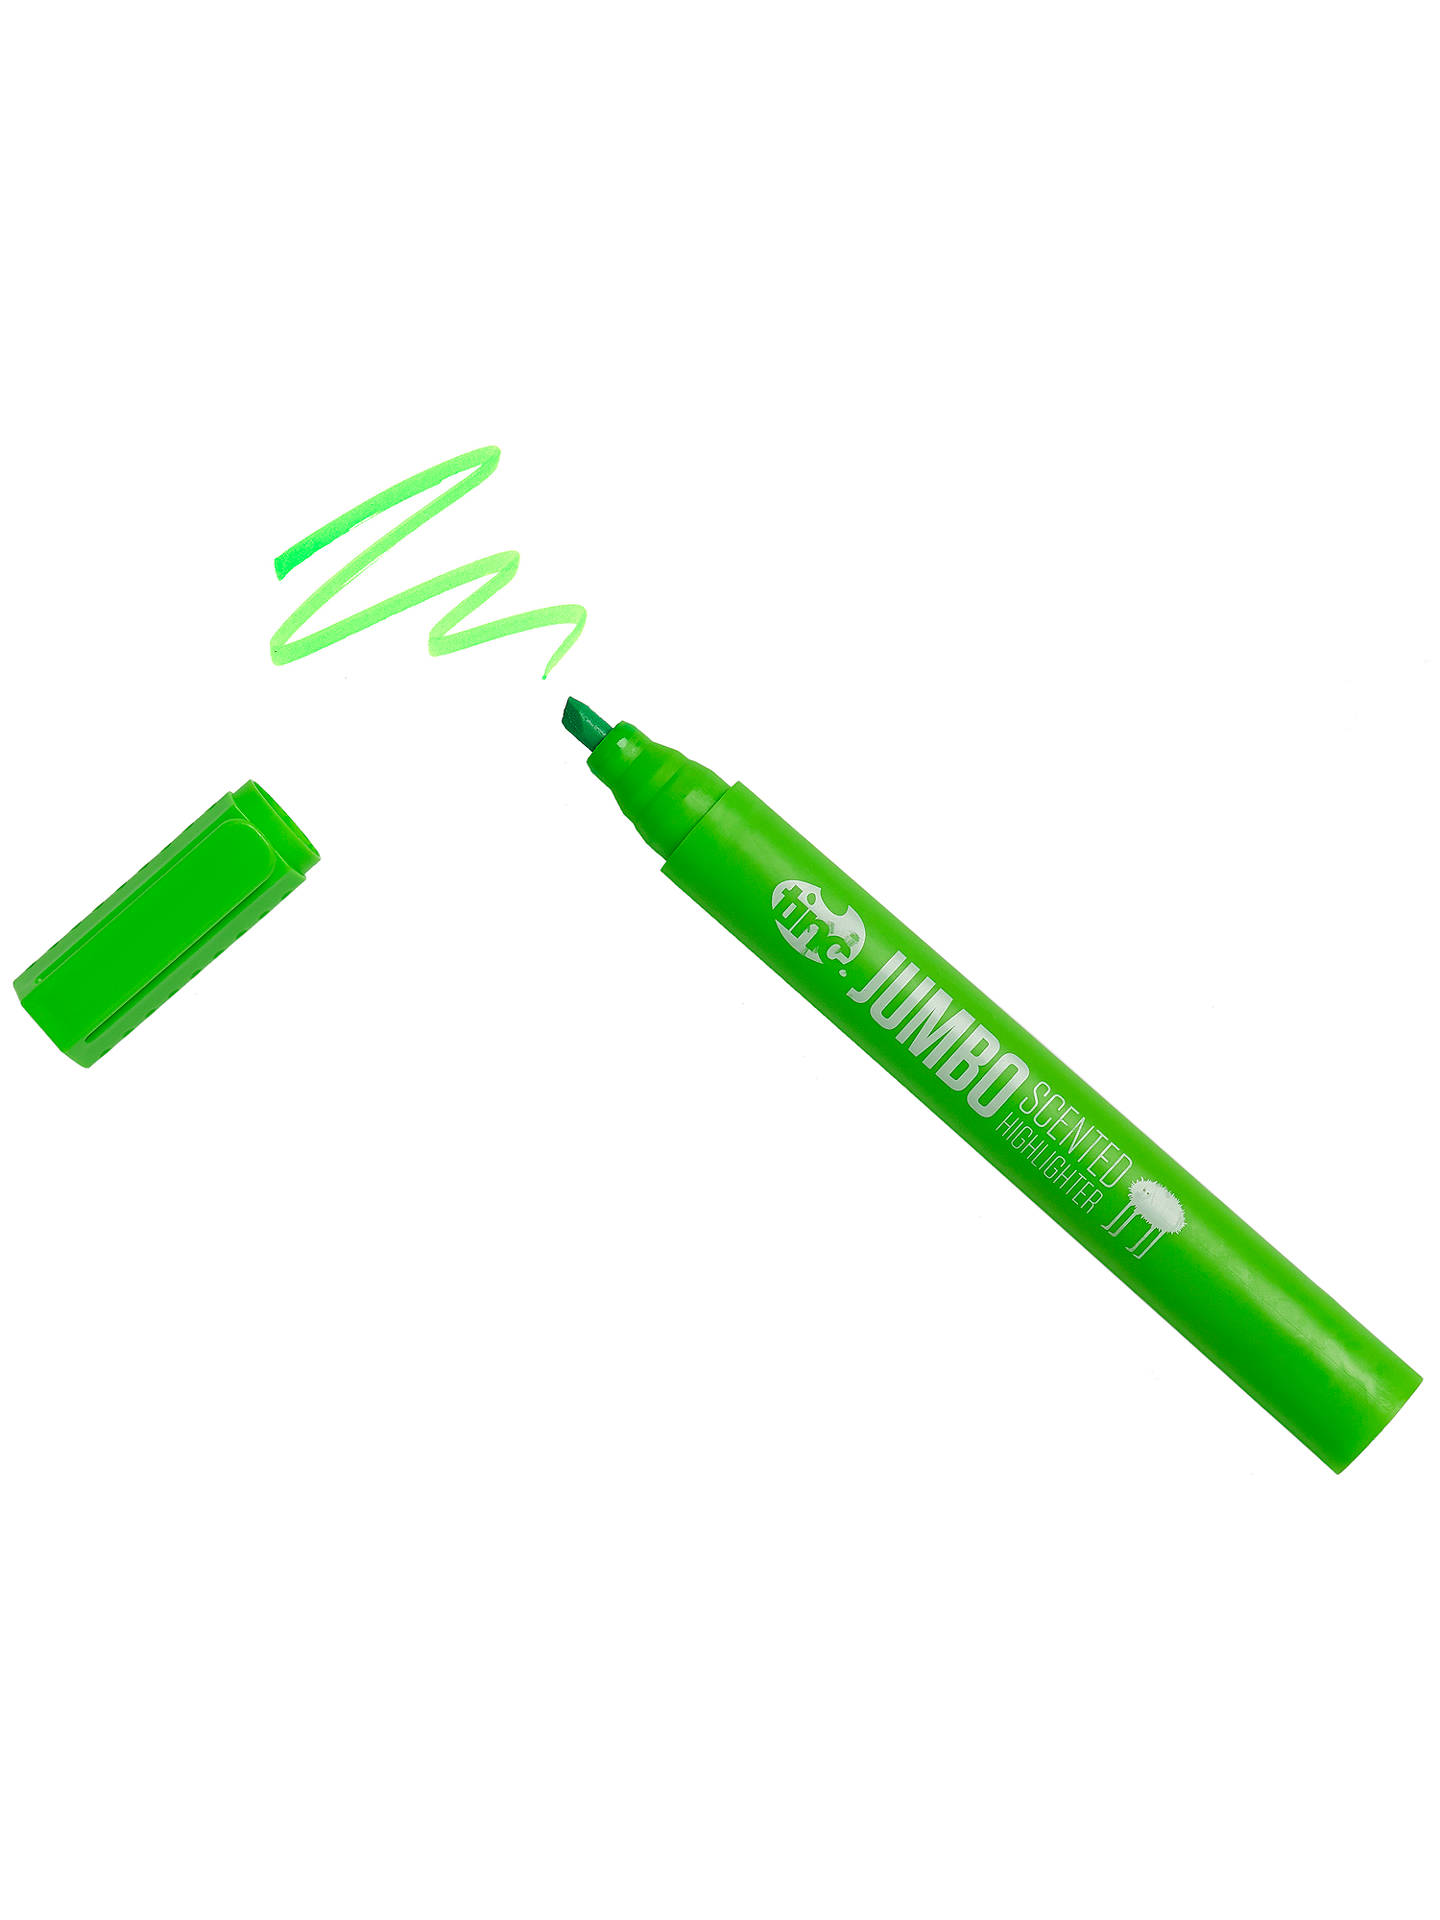 BuyTinc Jumbo Scented Highlighter Pen Online at johnlewis.com